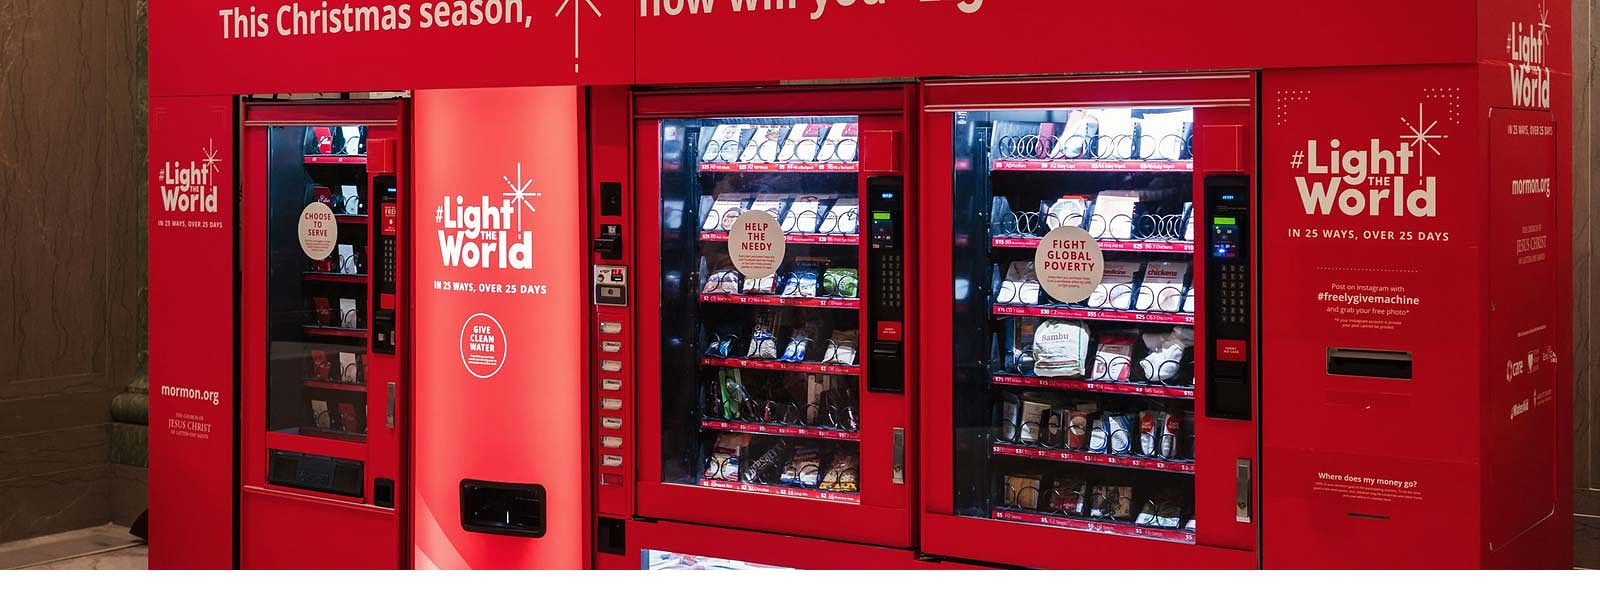 #LightTheWorld vending machine